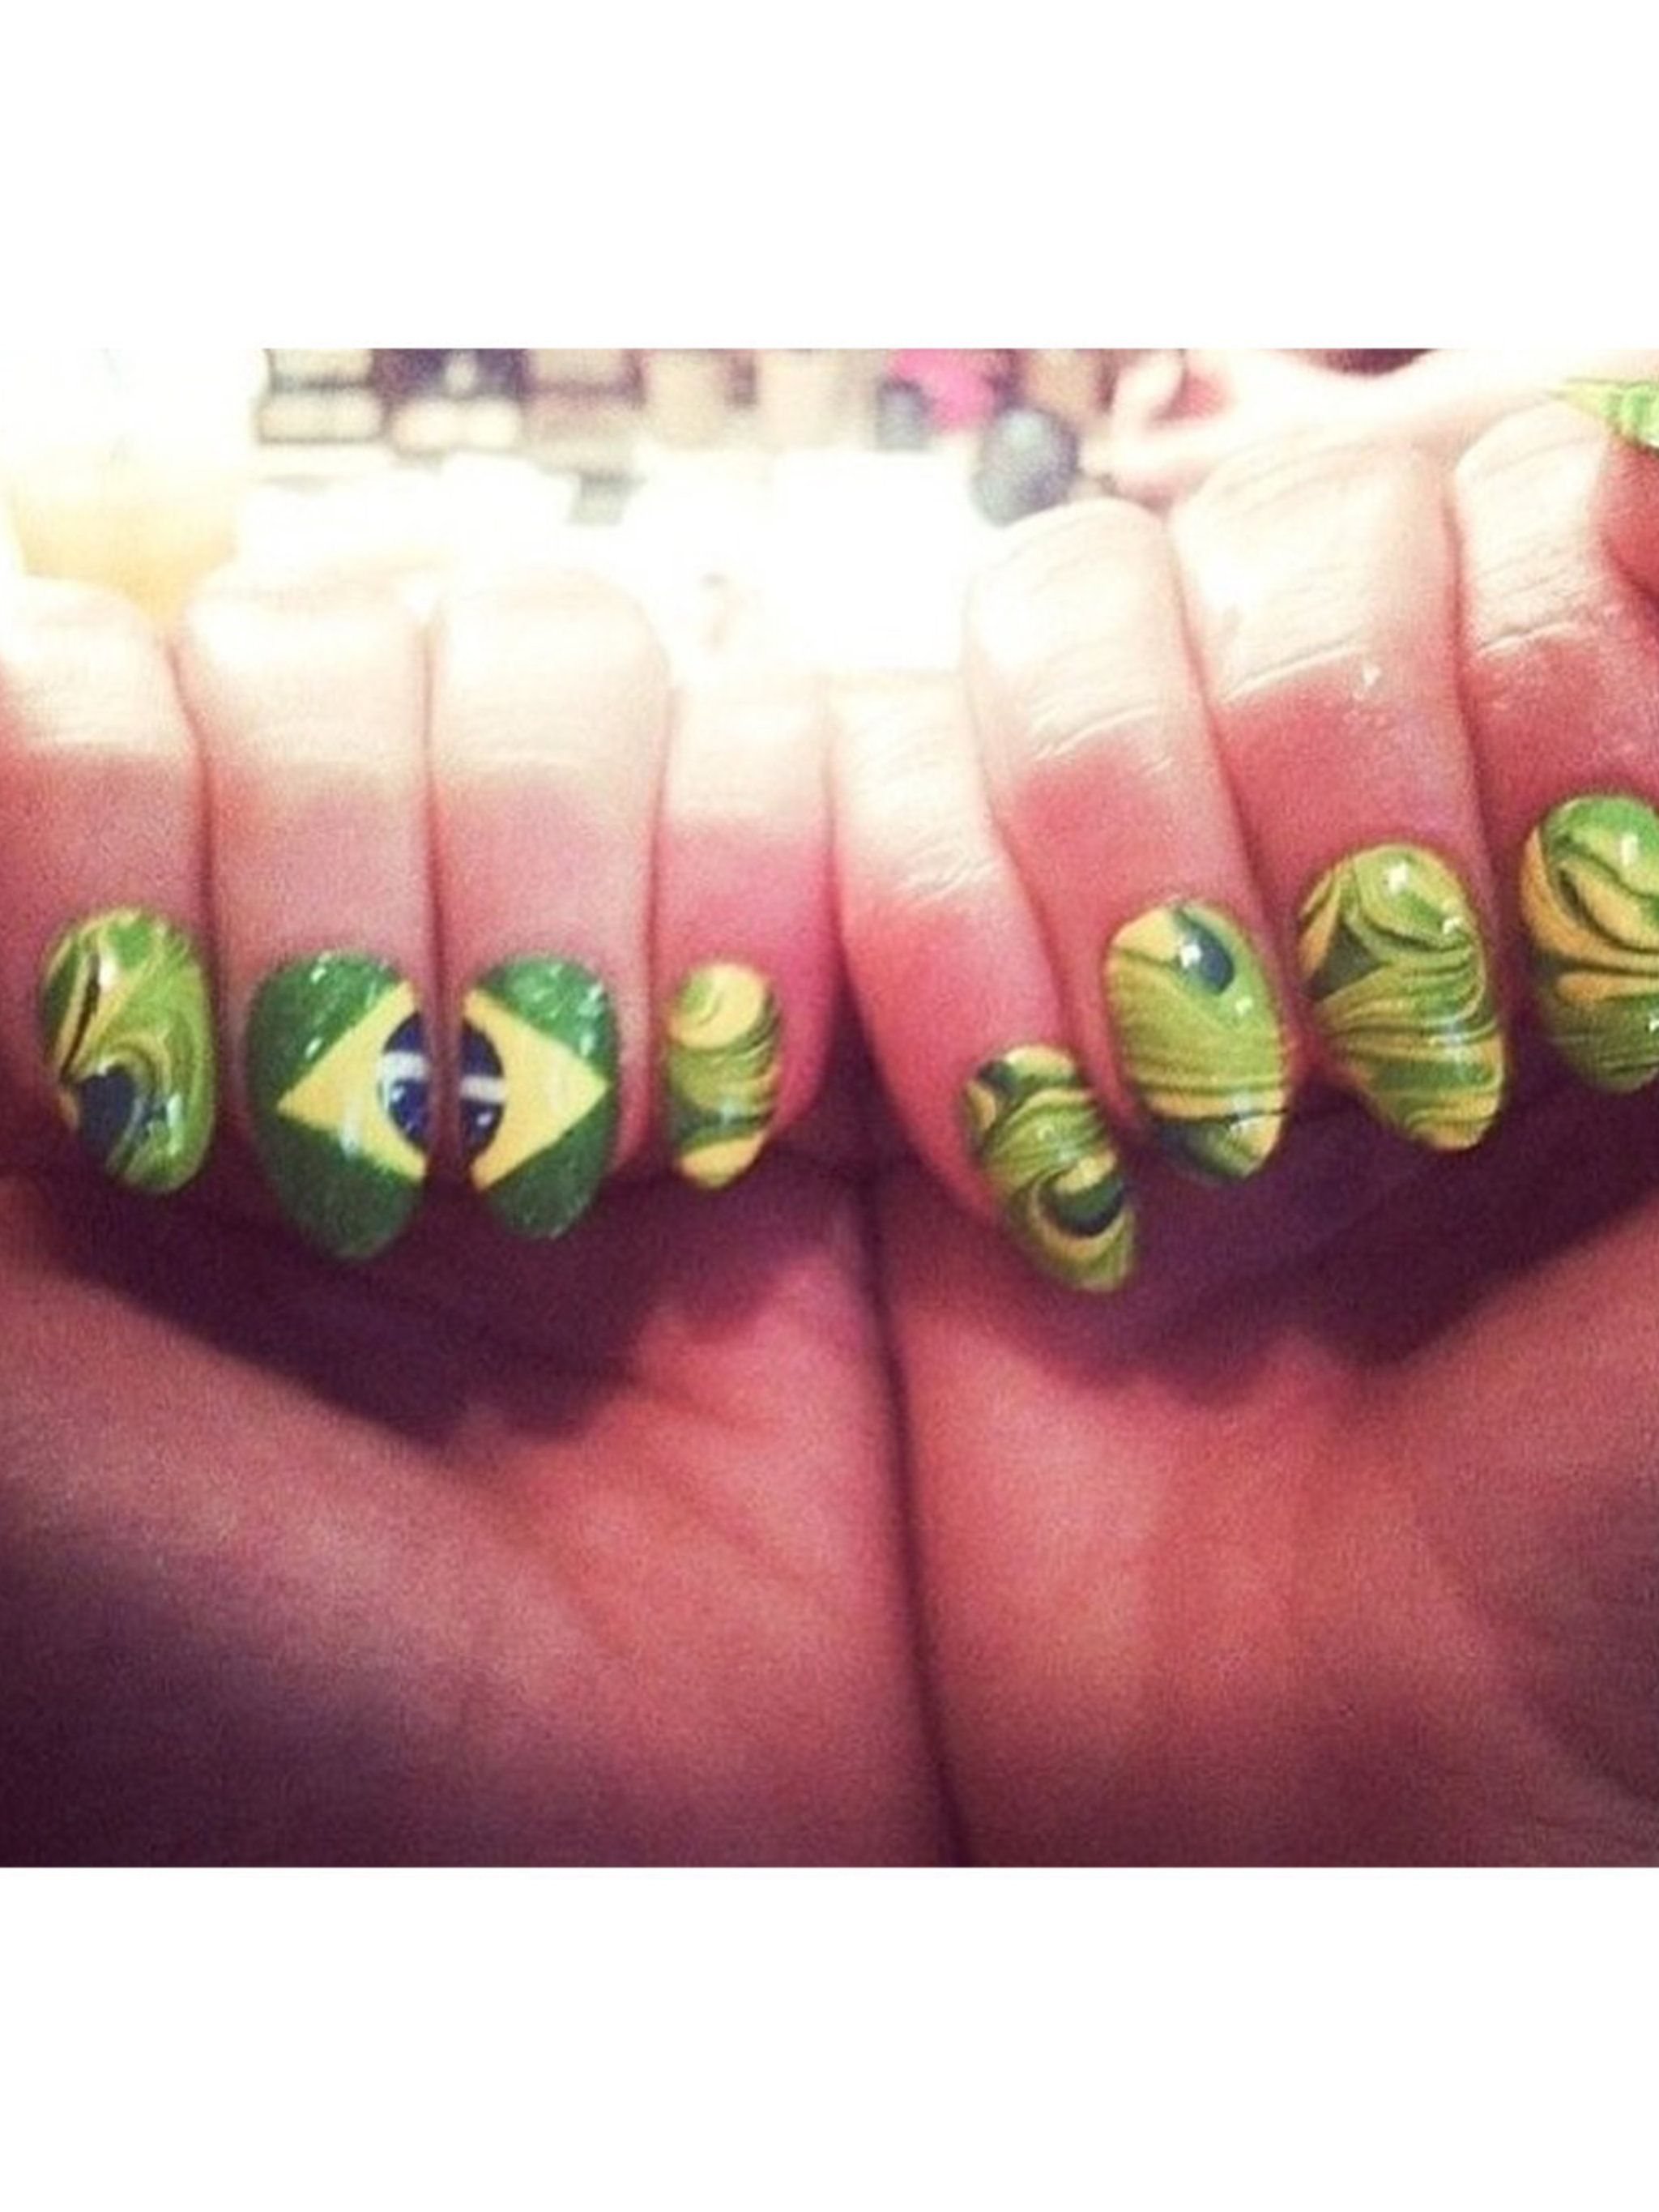 Nail Art Designs - The Best Celebrity Nail Art For All Your Manicure ...